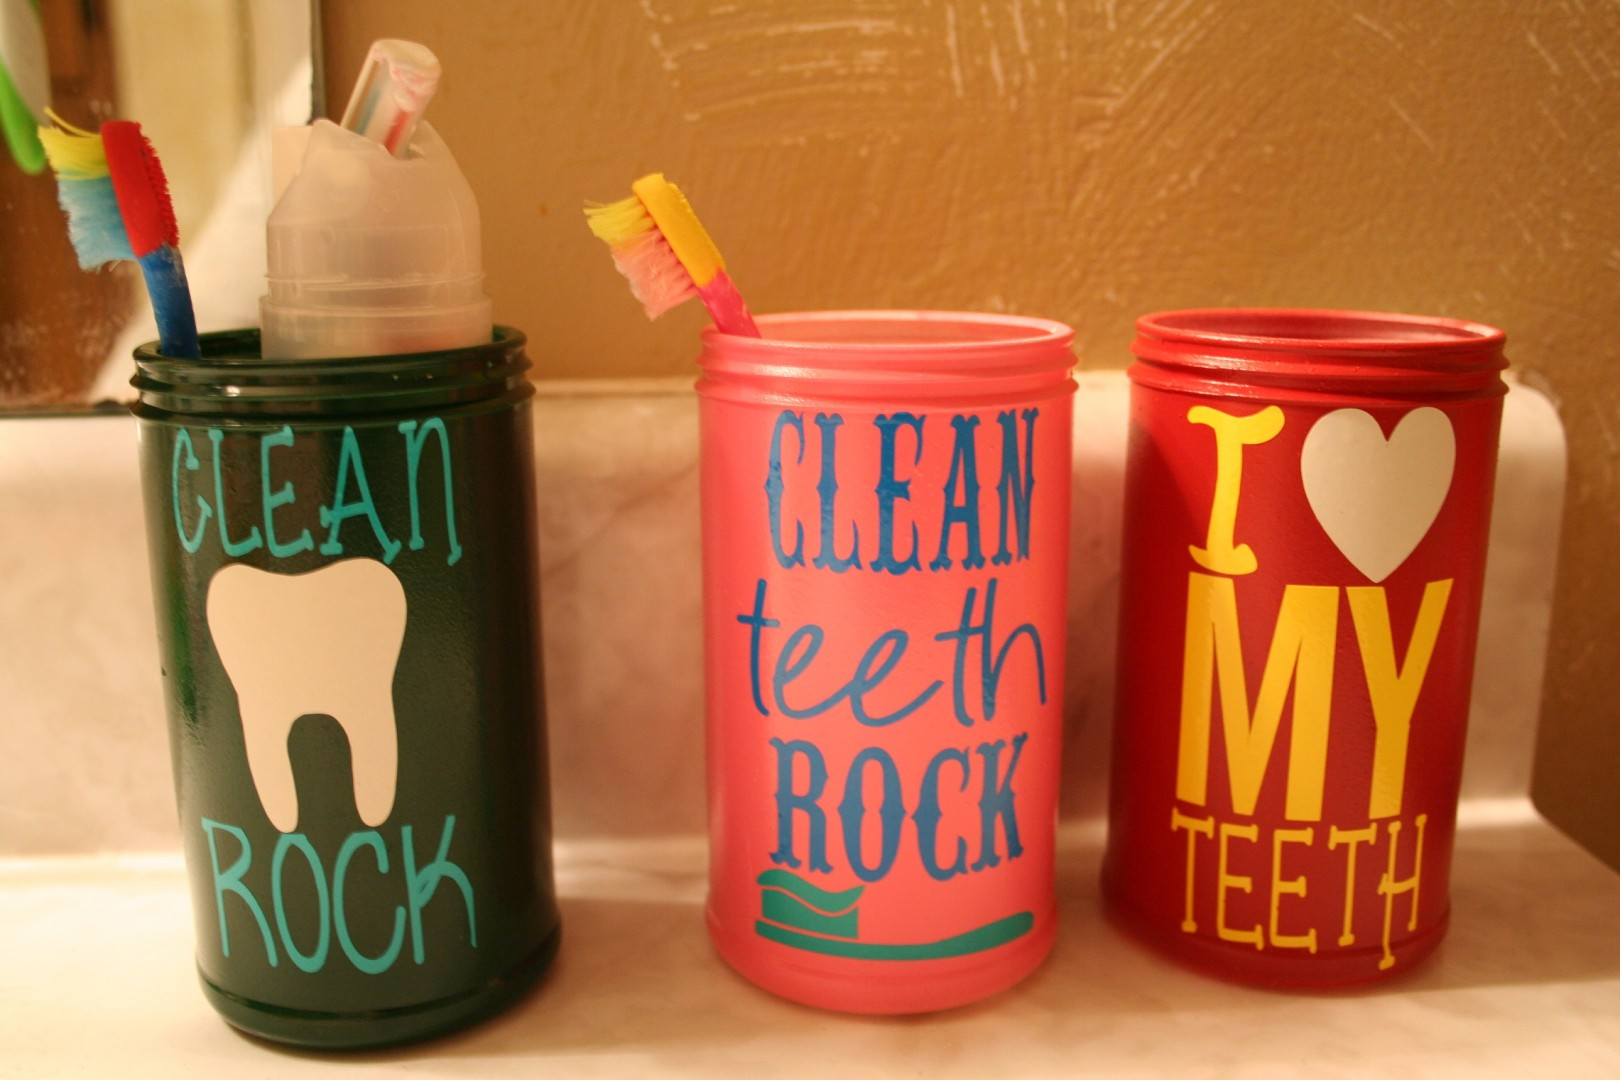 Upcycled Old Orchard Juice Cans into Toothbrush Holders